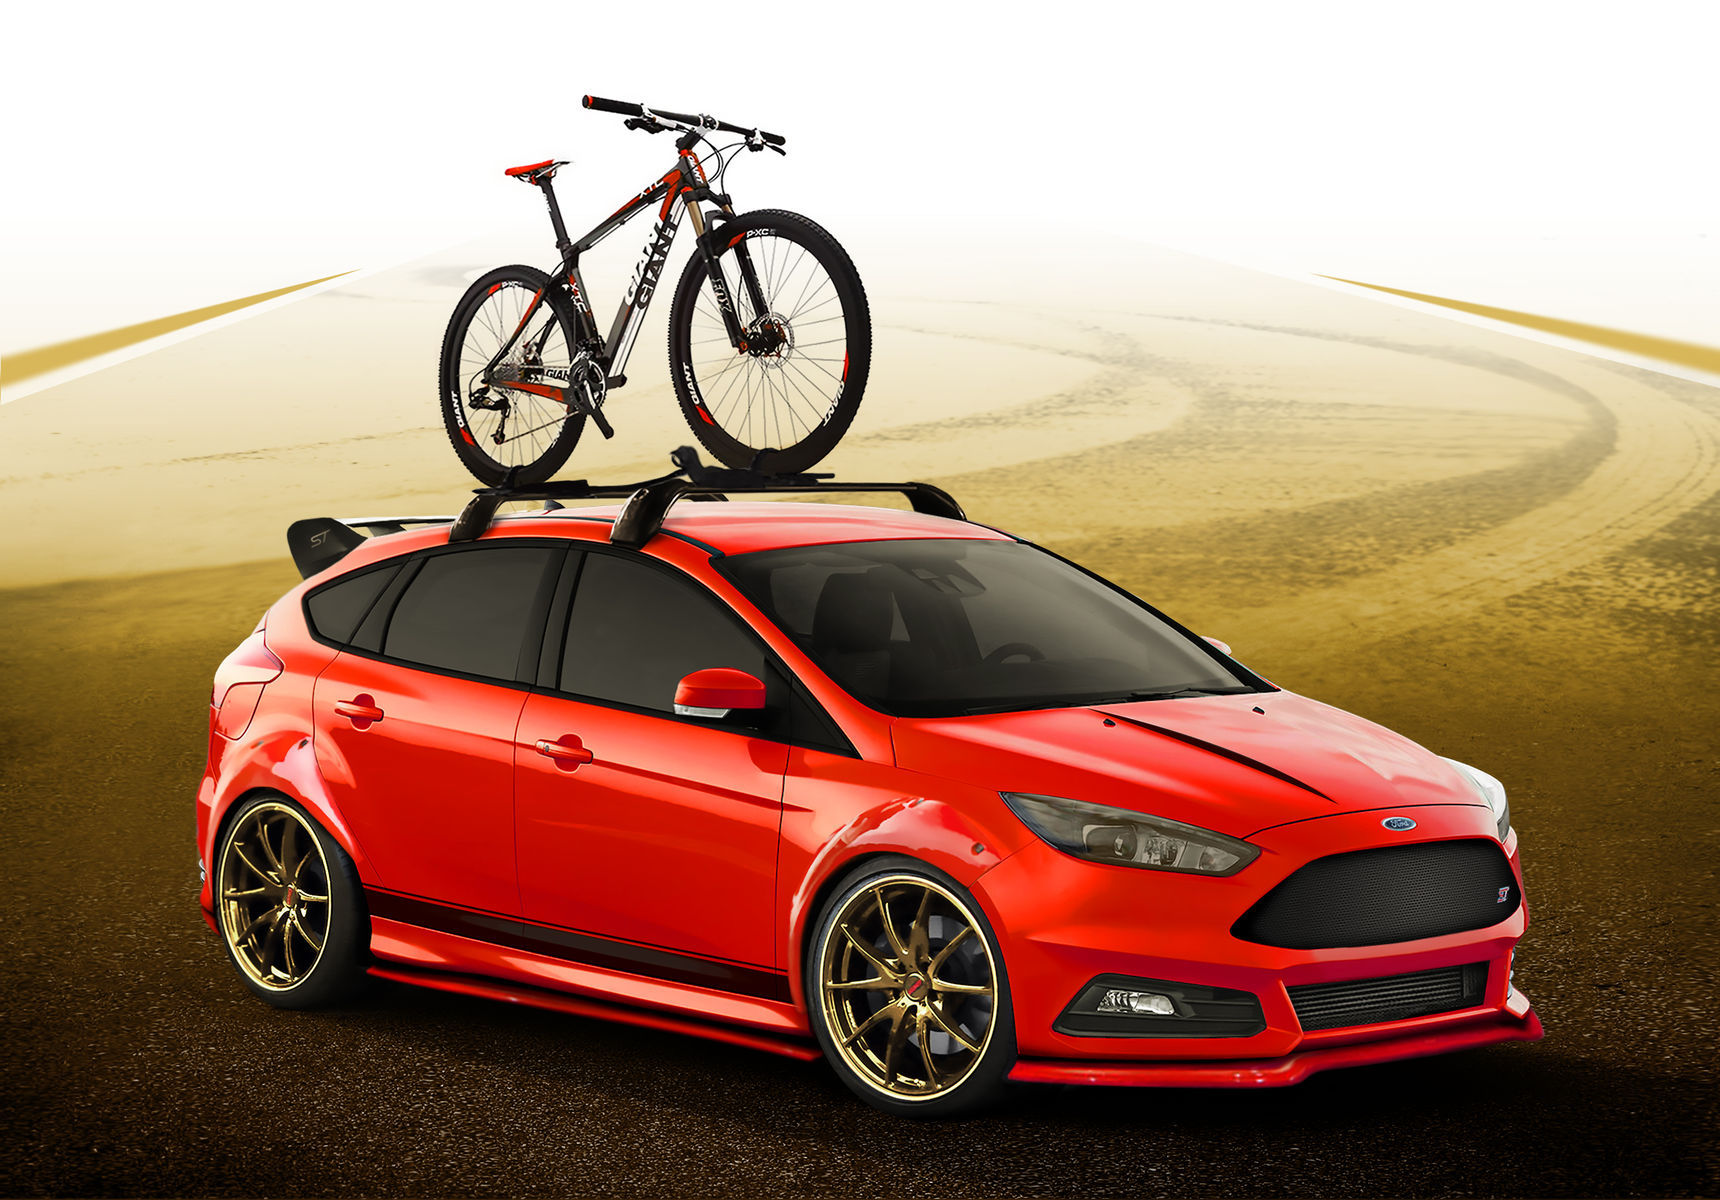 2015 Ford Focus ST | 2015 COBB Tuning Ford Focus ST - Rendering